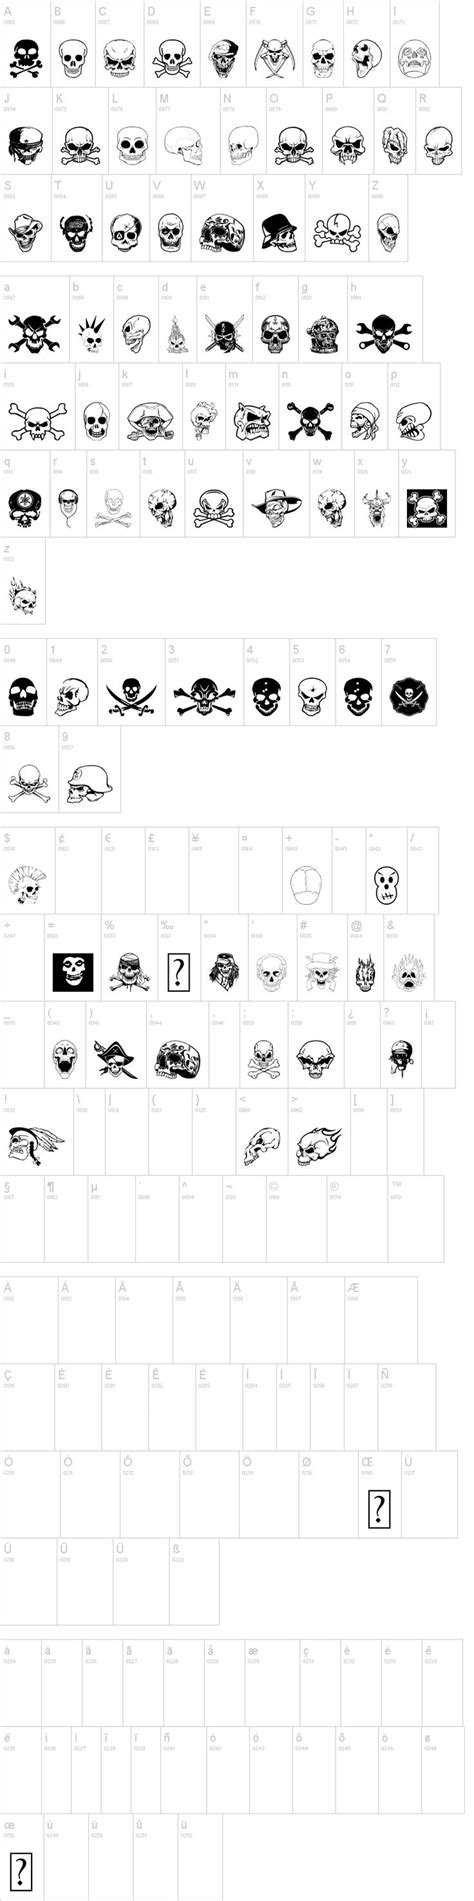 dafont royalty free 48 best images about free dingbats on pinterest vector